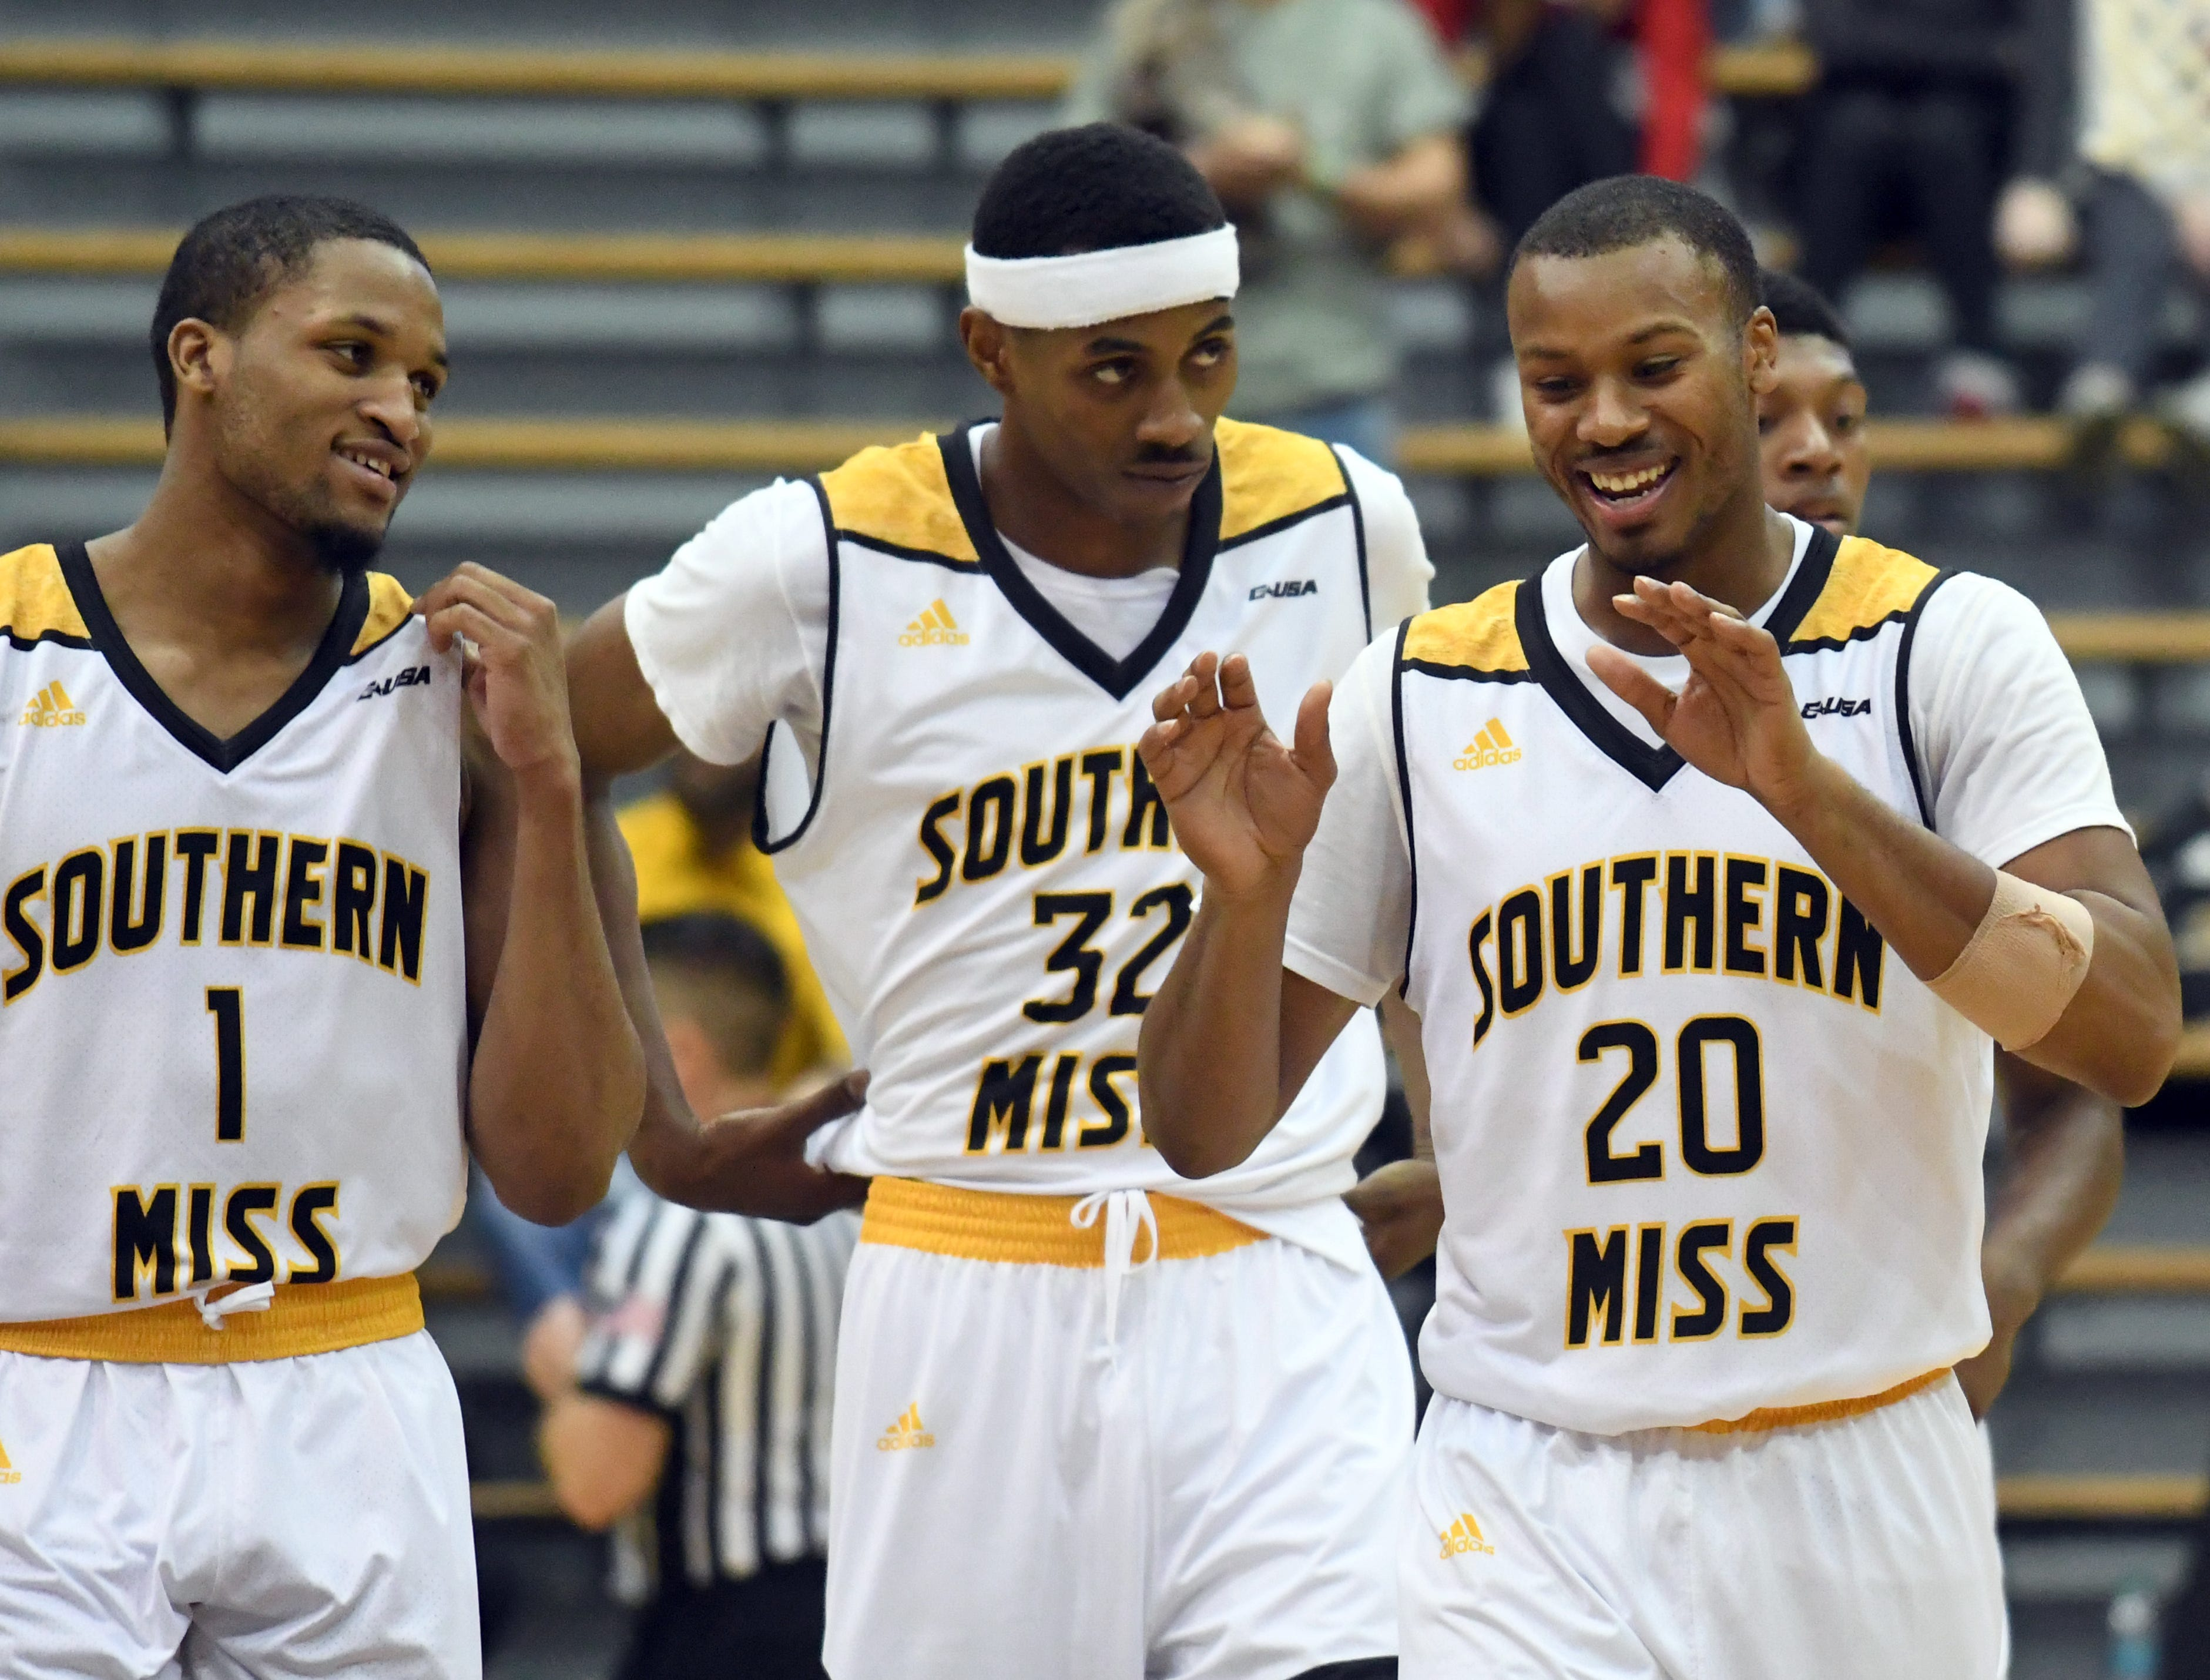 Southern Miss players celebrate after defeating South Alabama in Reed Green Coliseum on Wednesday, November 28, 2018.